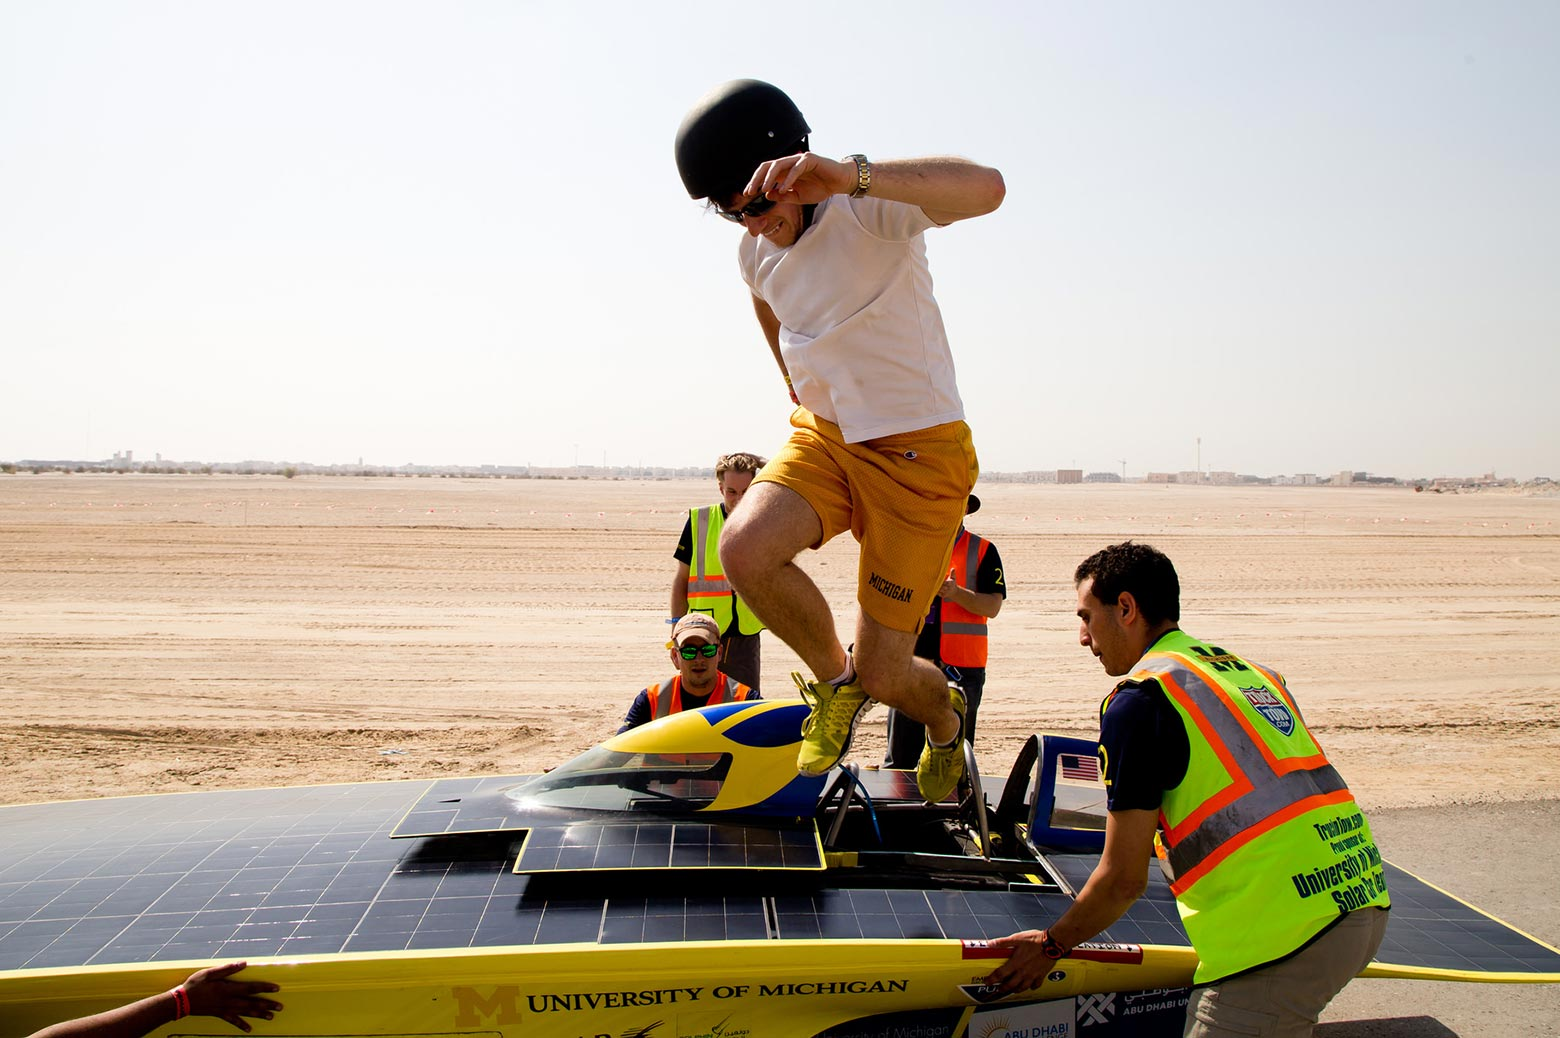 Solar car driver jumps out of the car